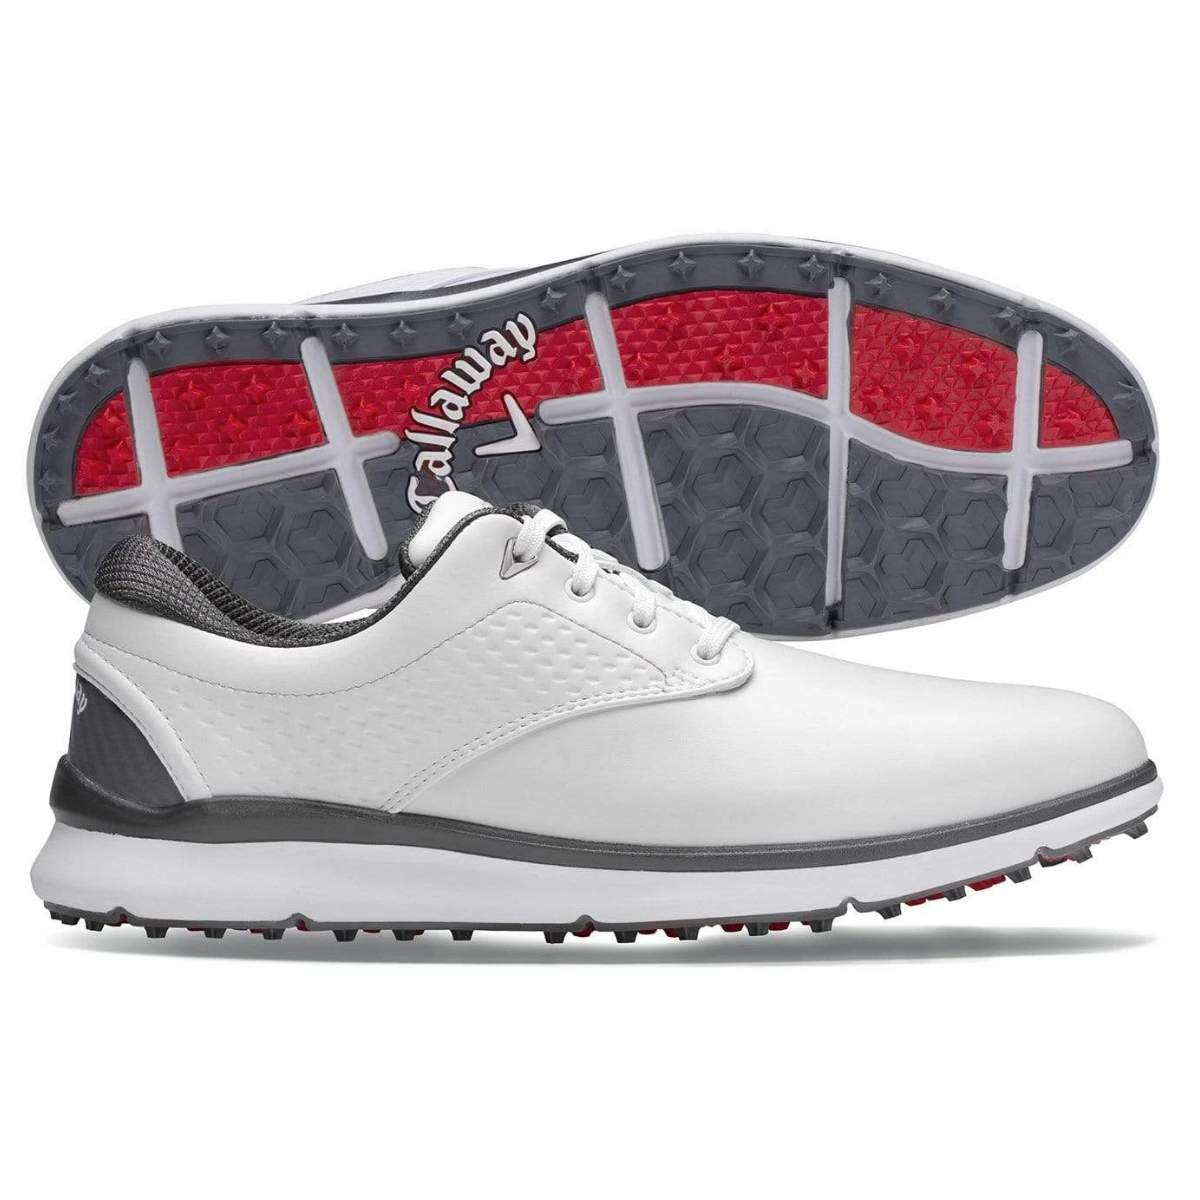 Callaway Men's Oceanside LX White Golf Shoes